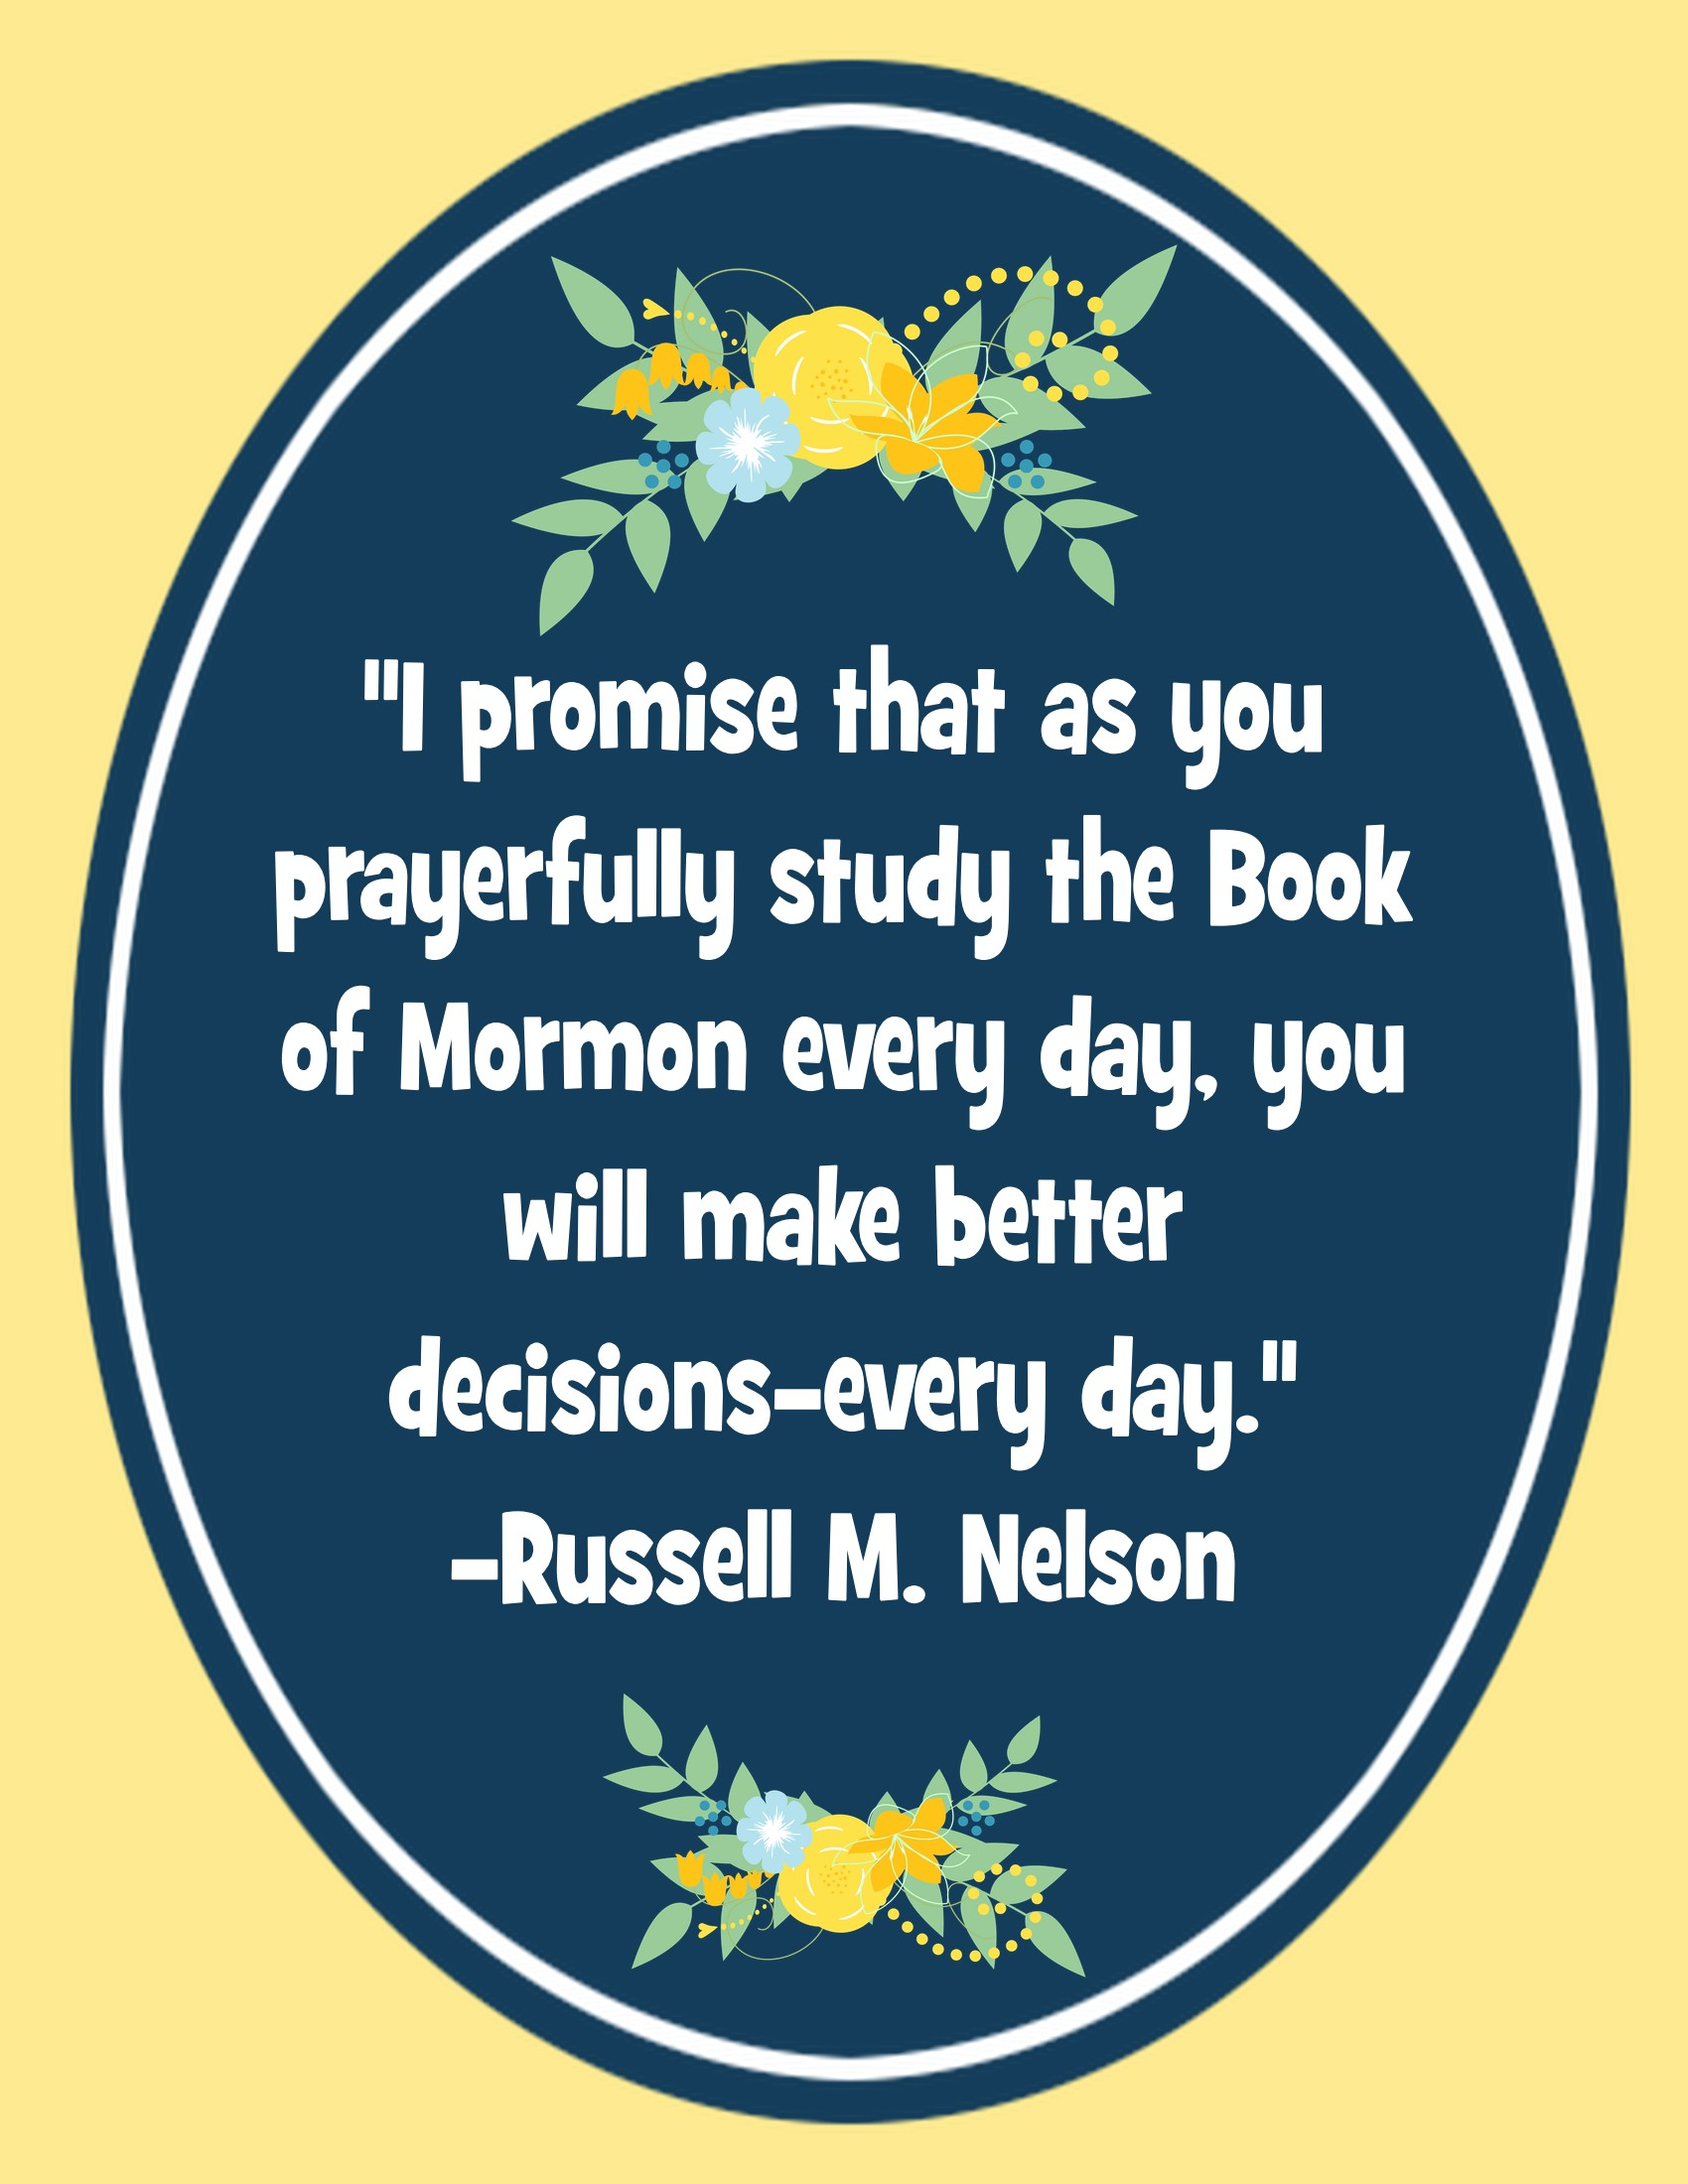 Book Of Mormon Quotes I Promise That As You Prayerfully Study The Book Of Mormon.quote